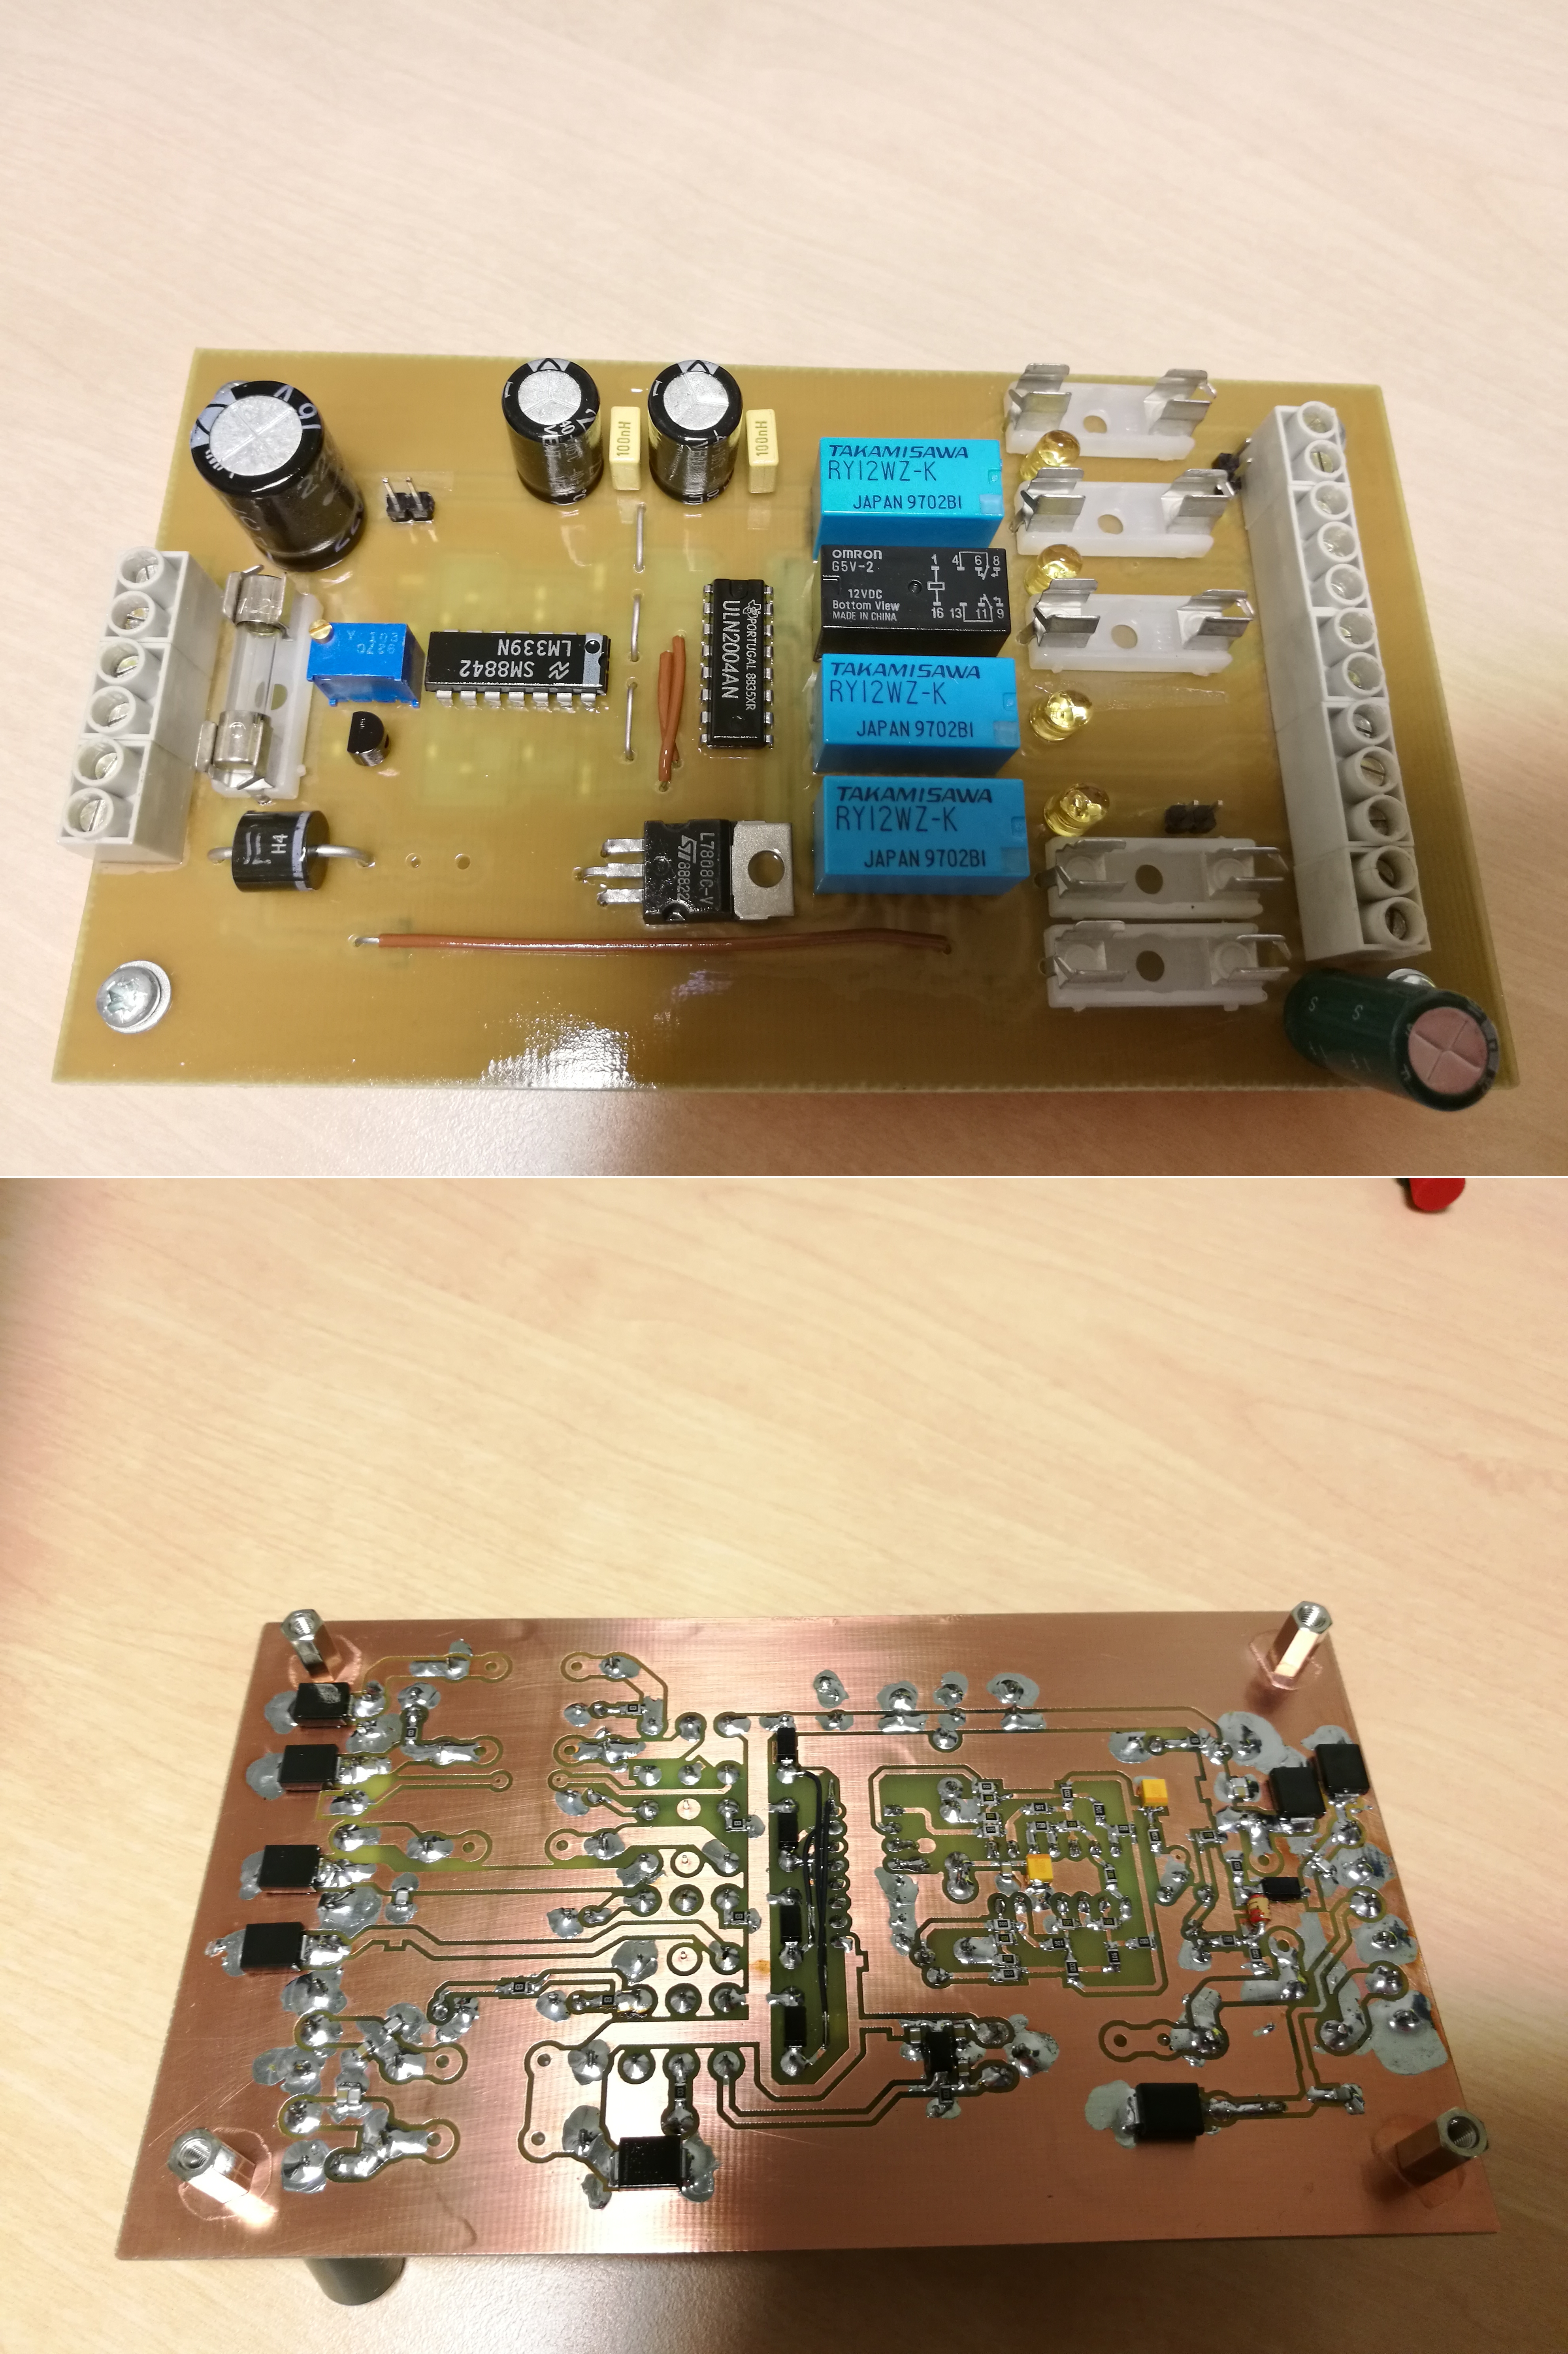 3 Cm Page Transient Rc Circuit Containing The Necessary Fuses Filter Capacitors And Tvs Diodes For Protection Core Of This Board Is A Lm339